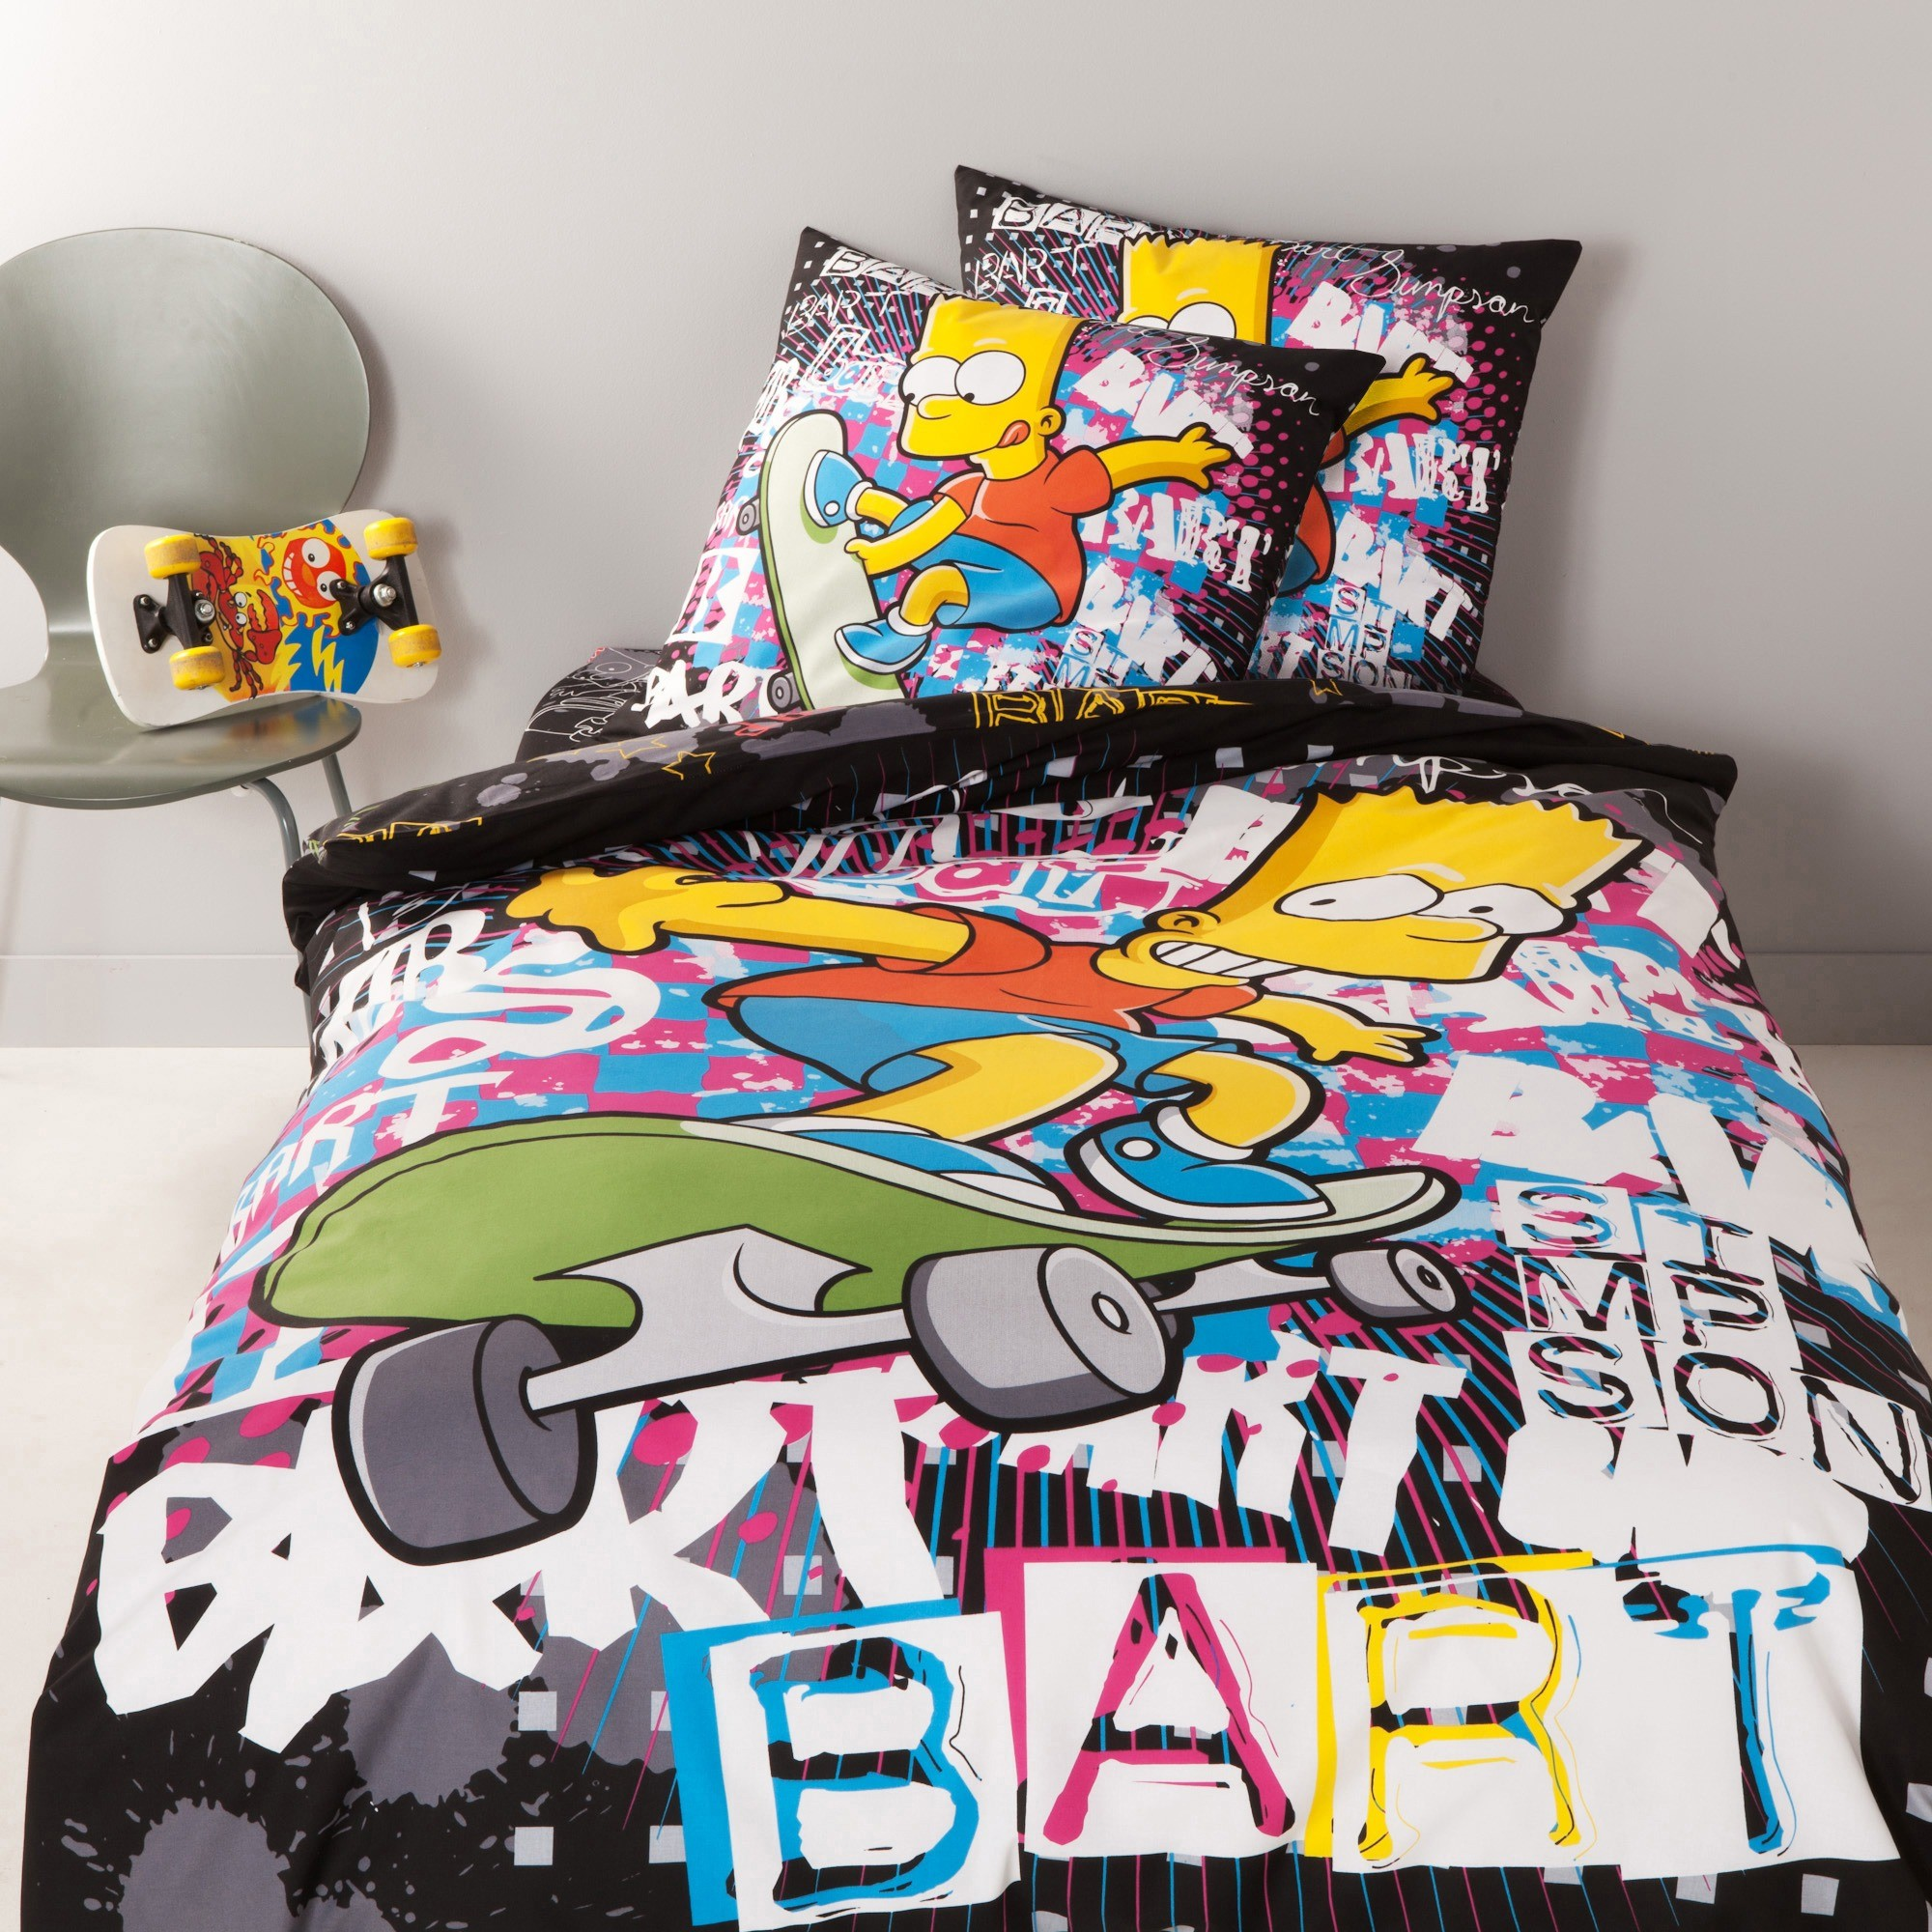 avis bart simpson graffiti housse de couette the. Black Bedroom Furniture Sets. Home Design Ideas